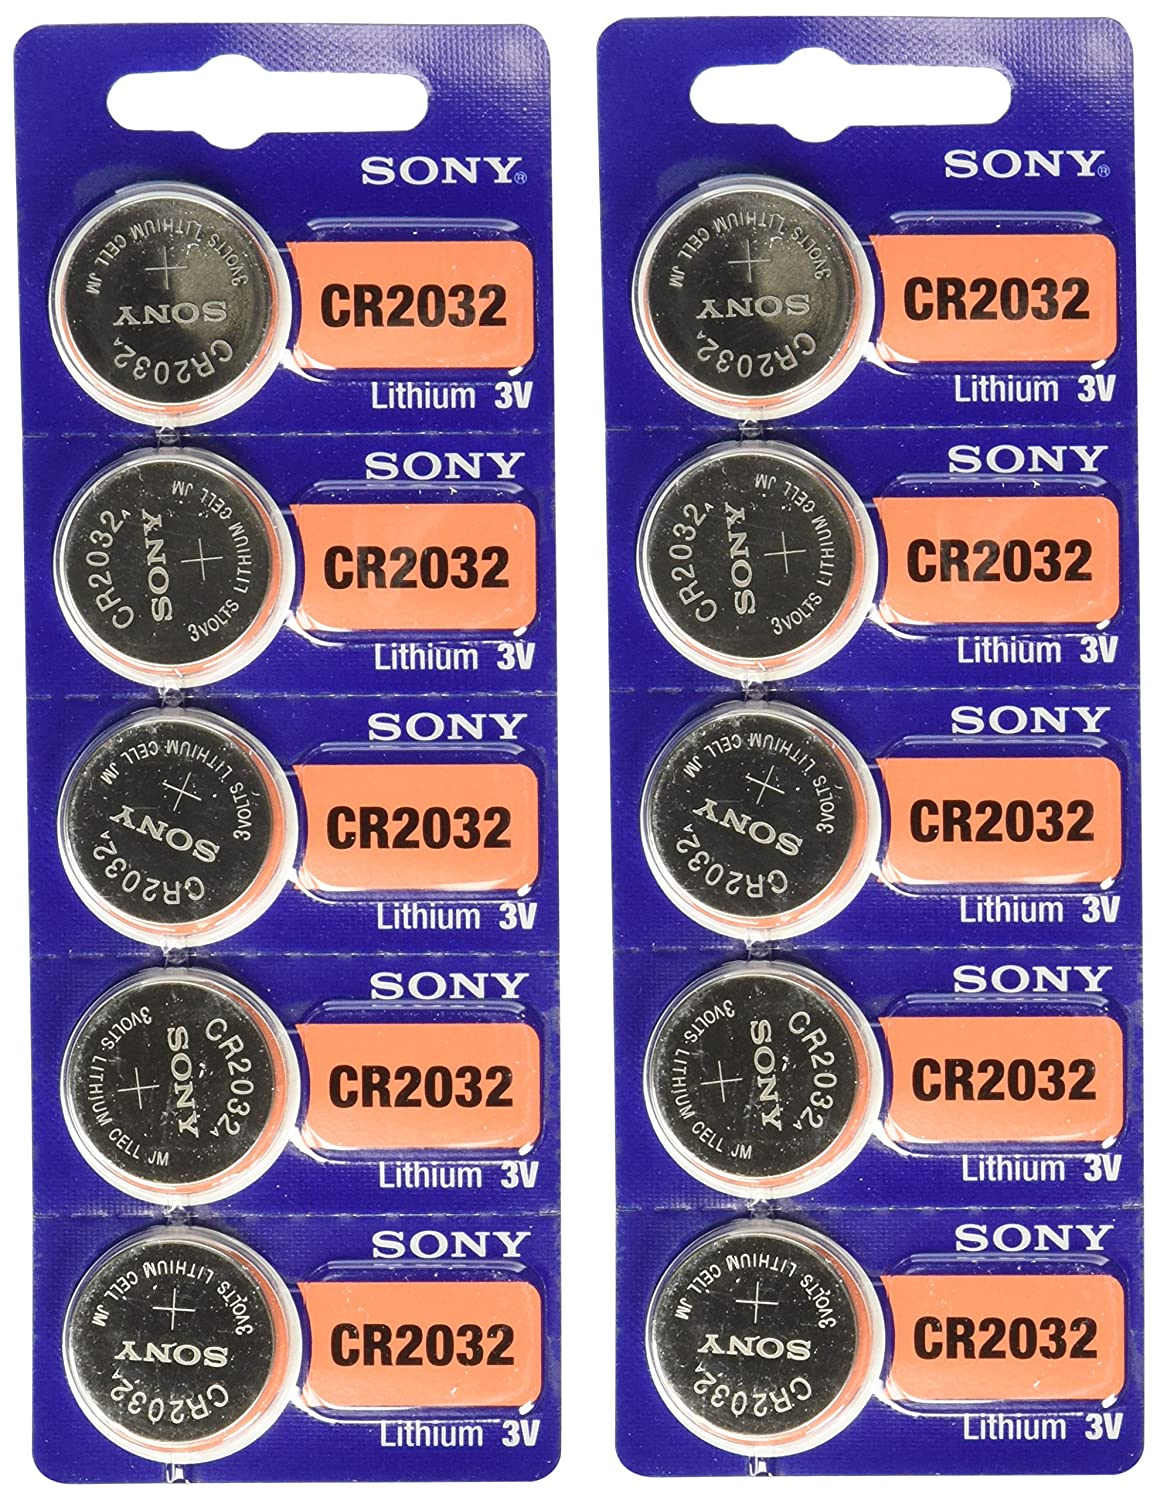 Sony Cr2032 Batteries